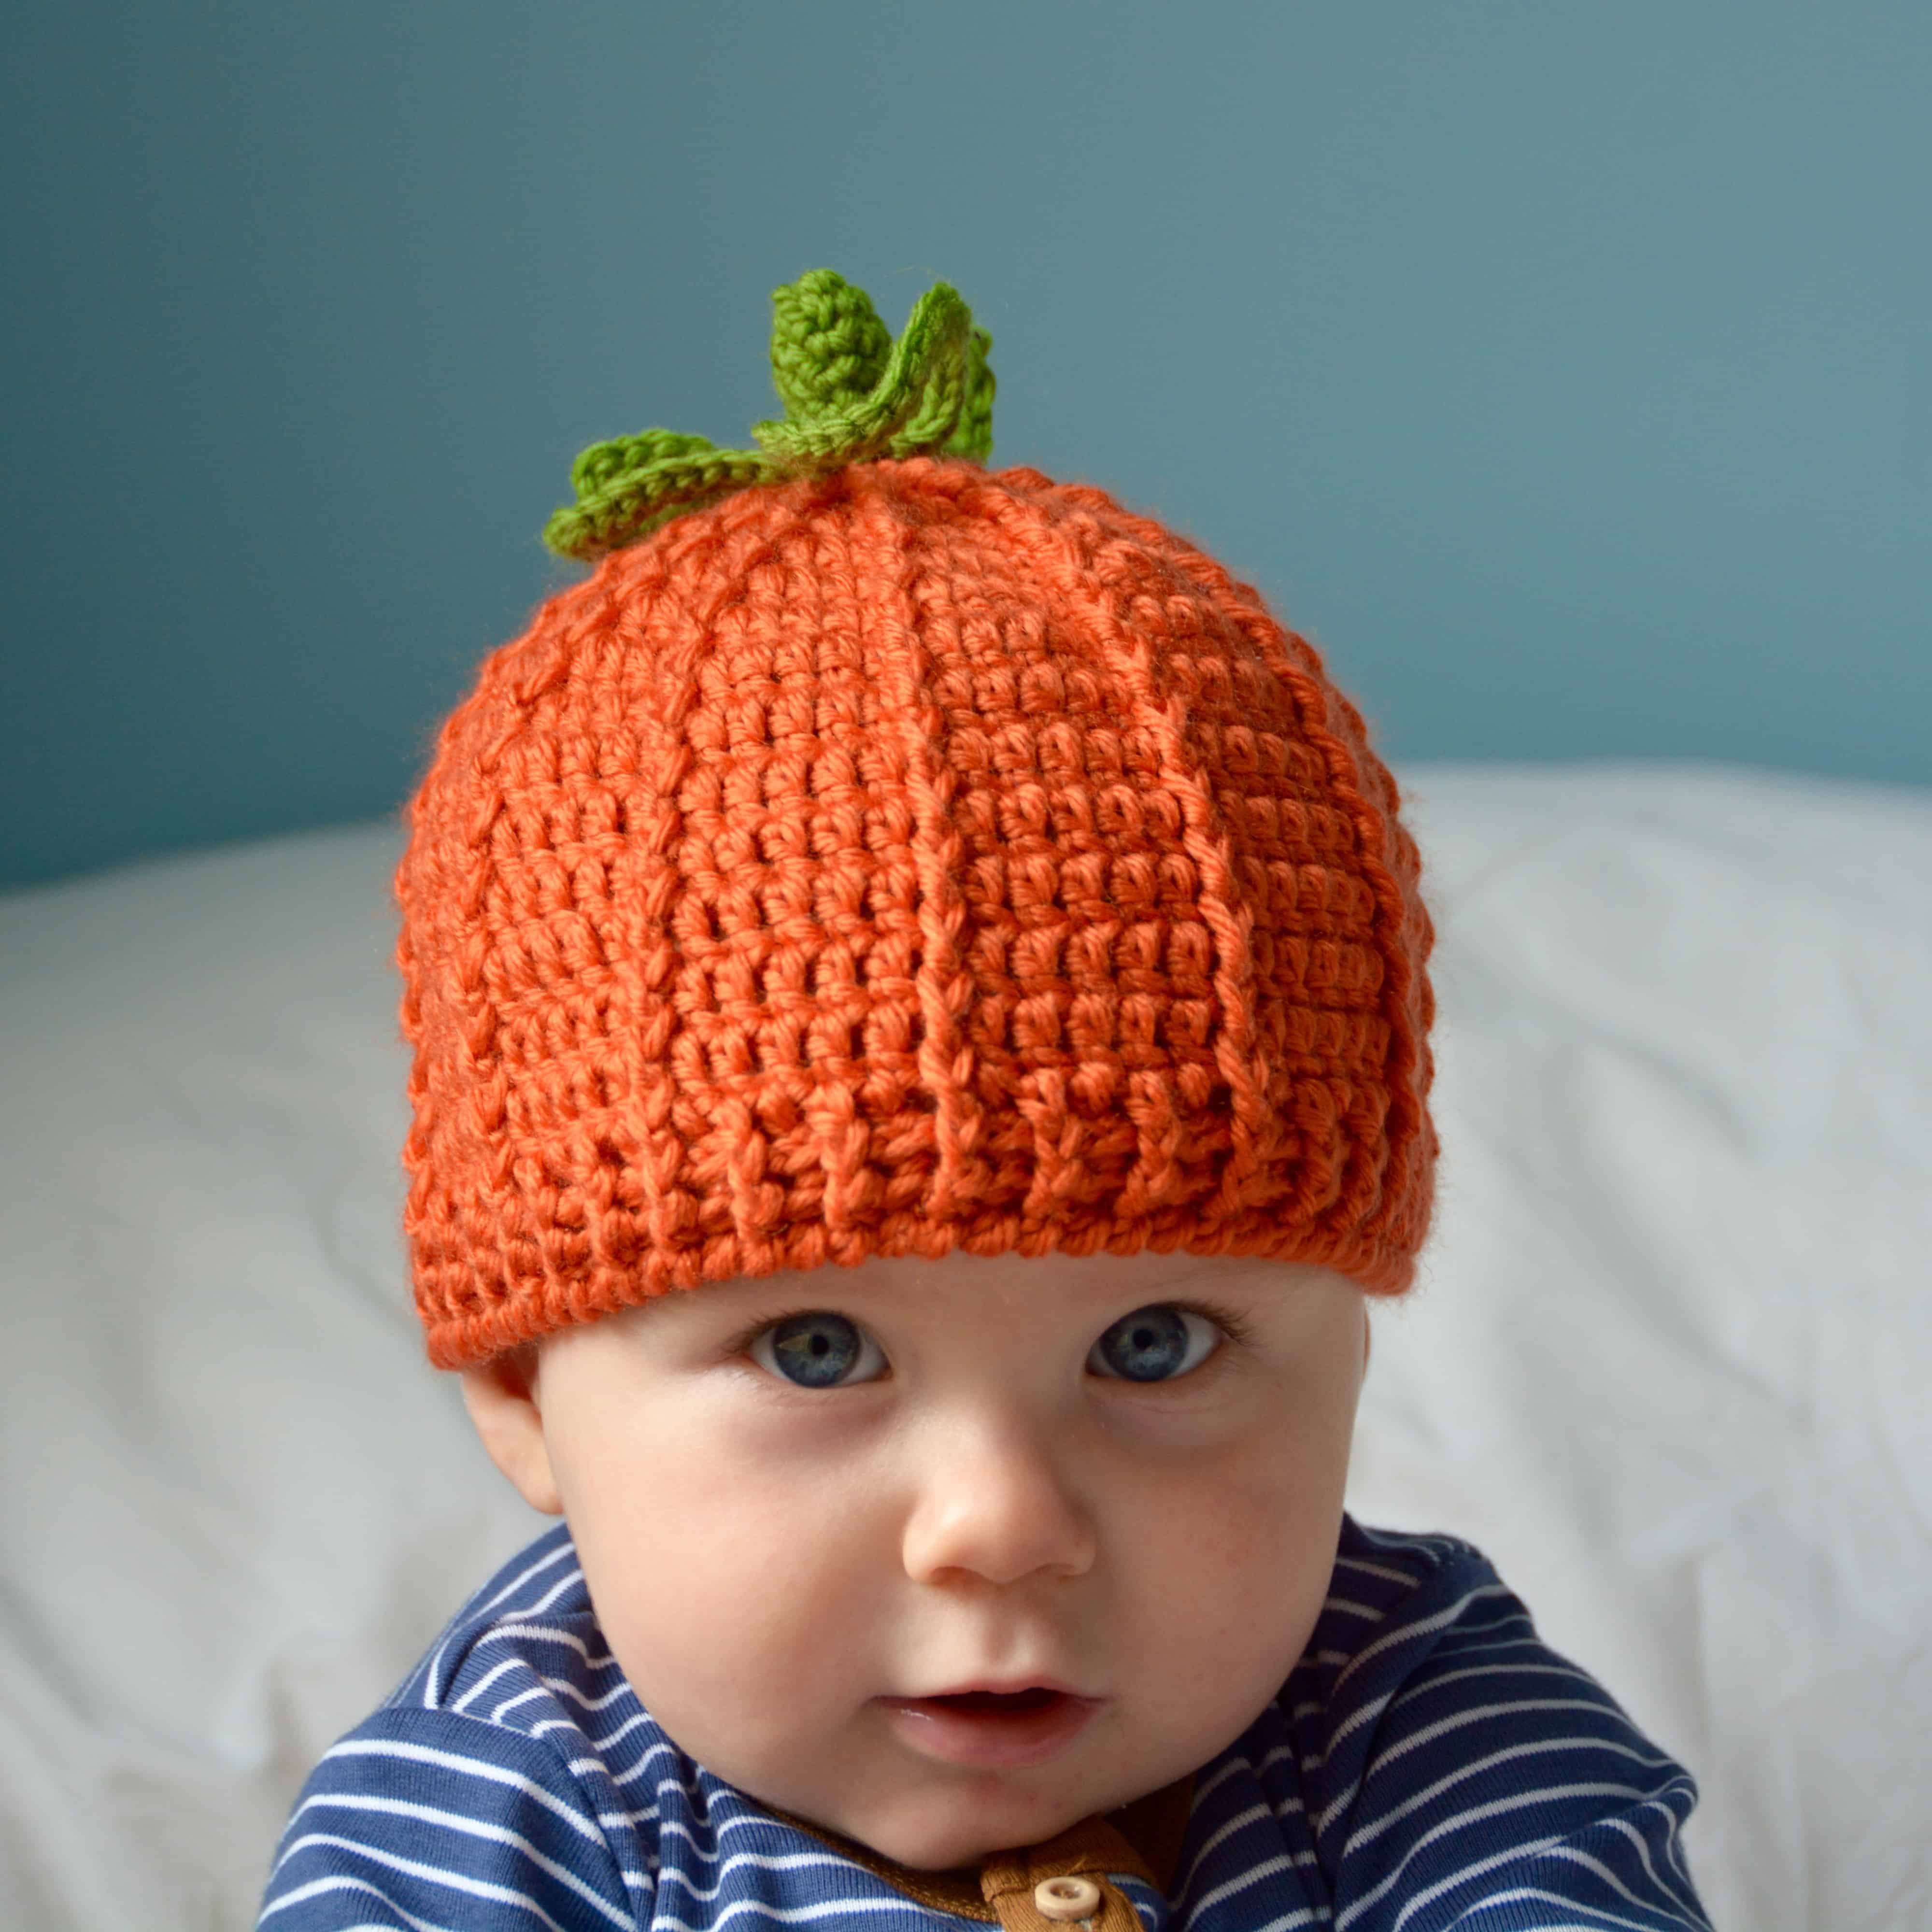 Pumpkin beanie hat free crochet pattern by HanJan Crochet